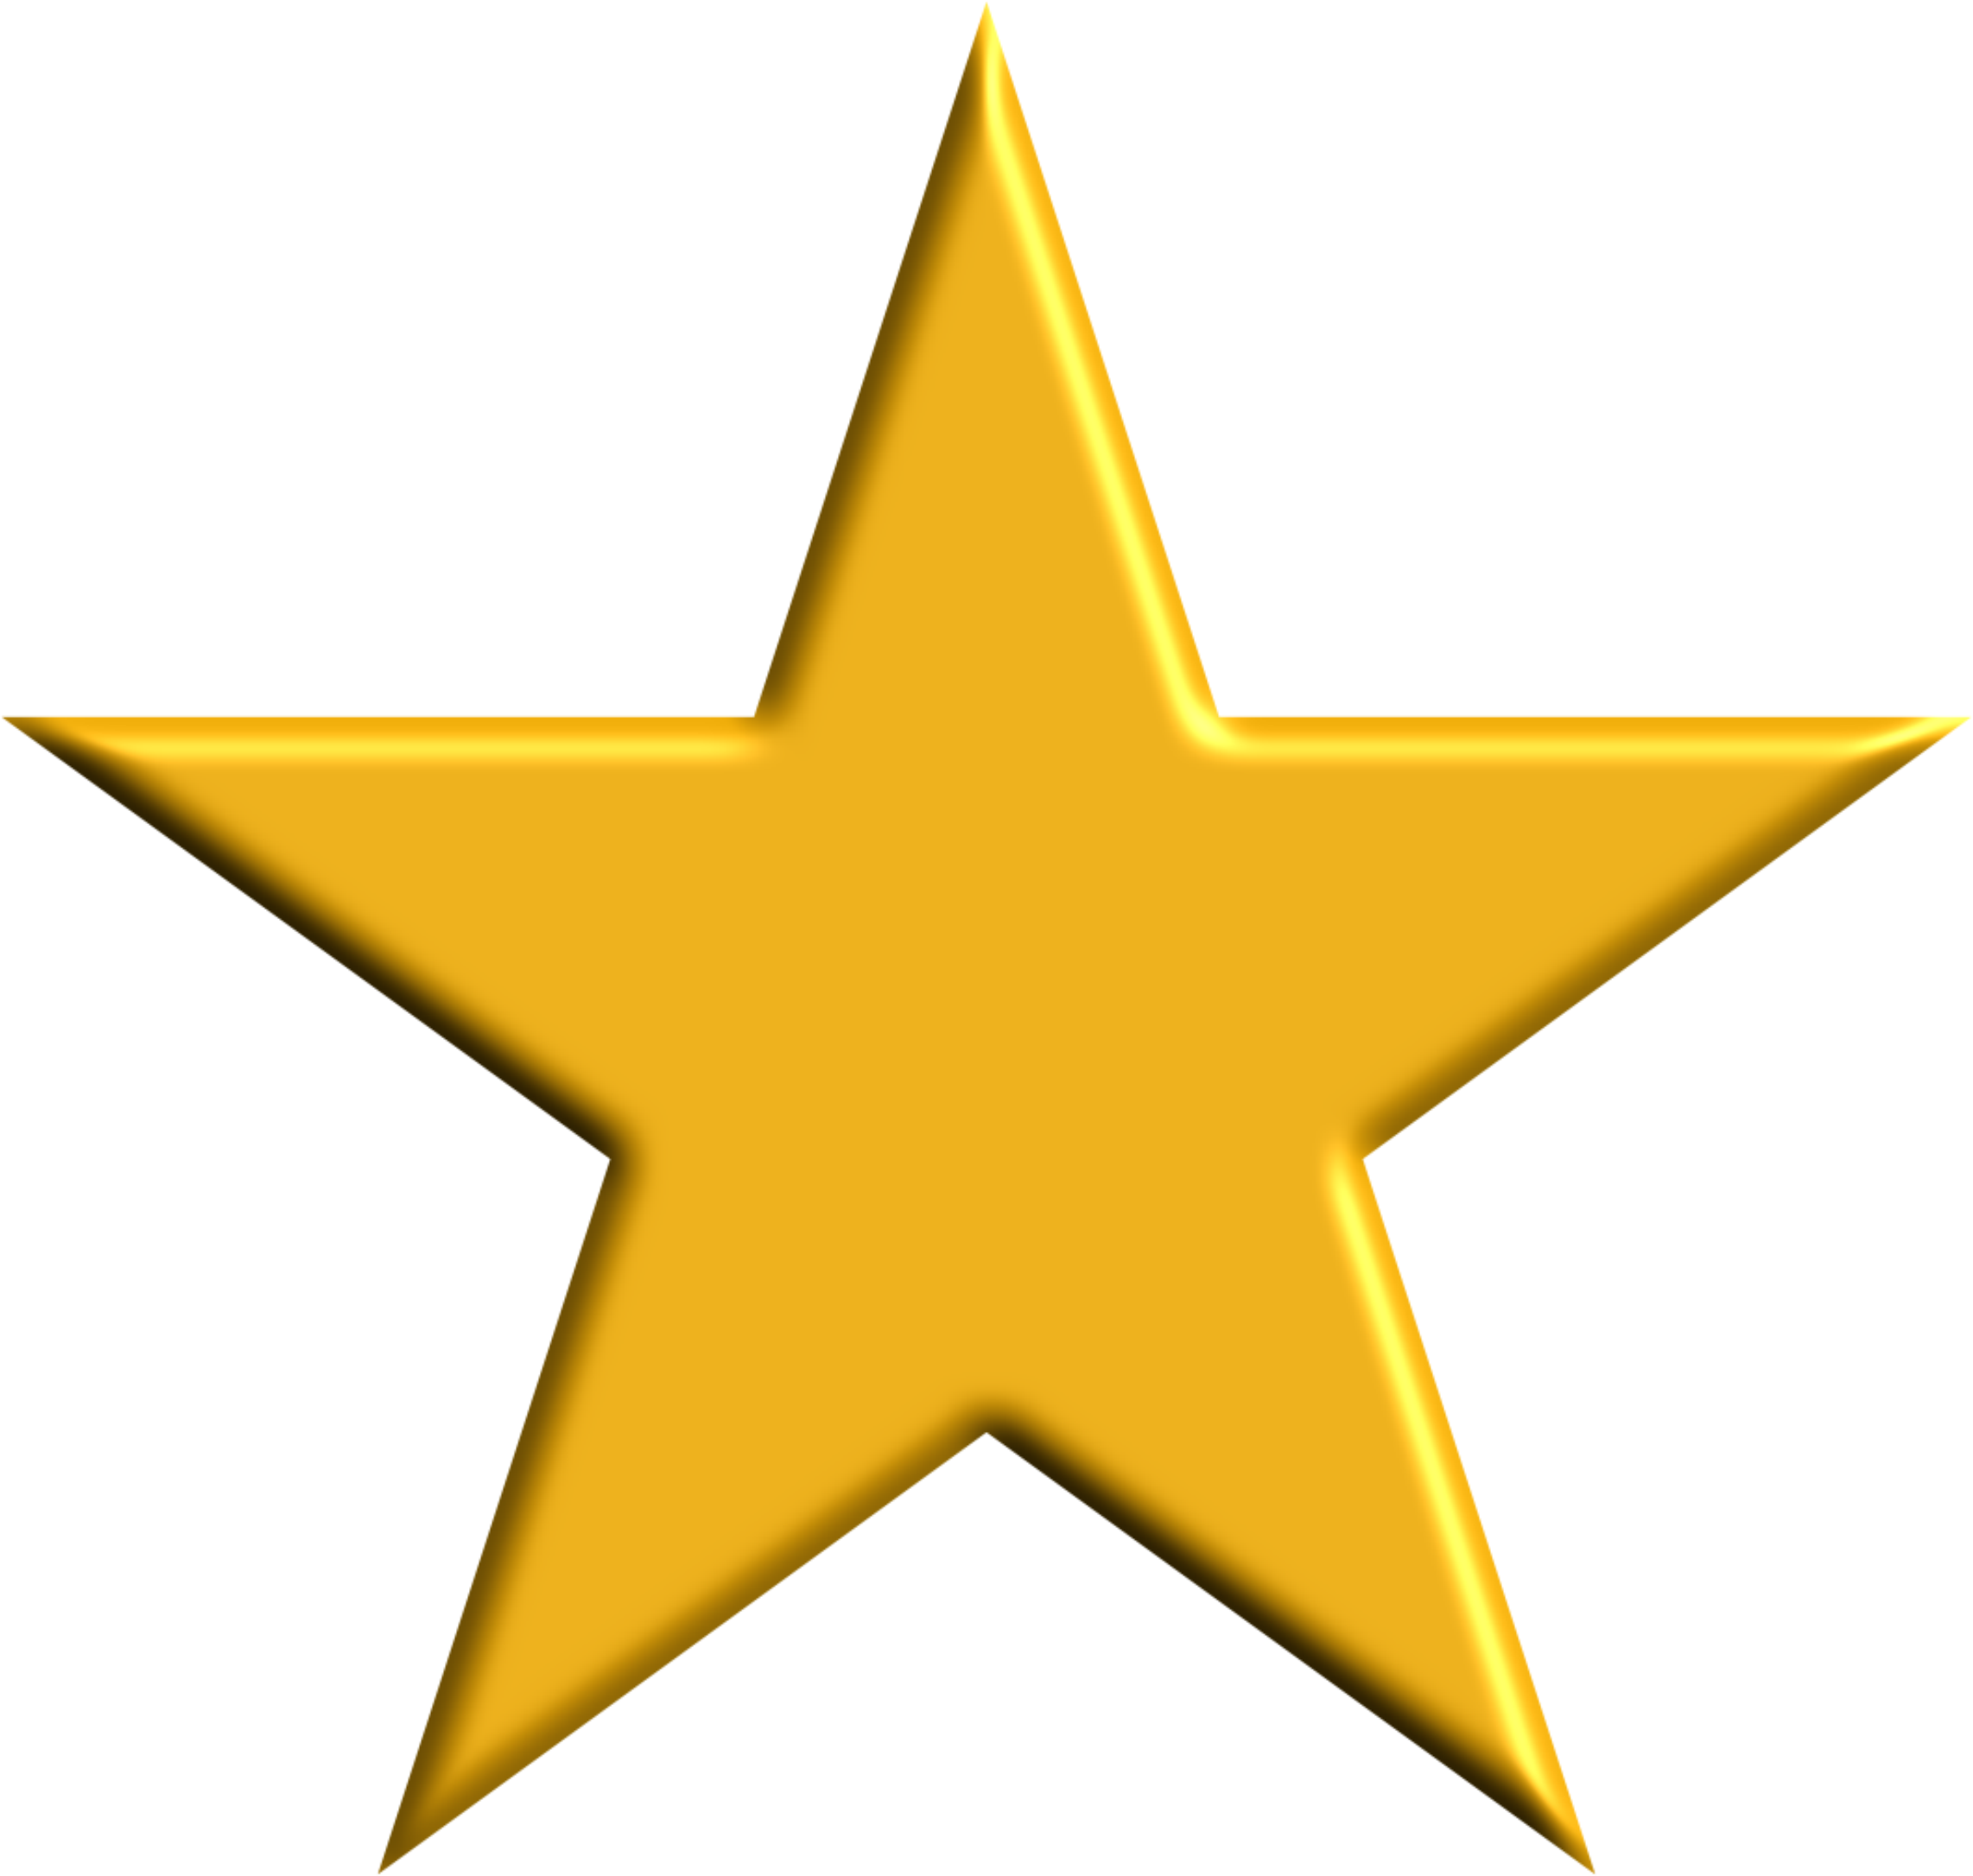 Best Gold Star Clip Art Image » Free Vector Art, Images, Graphics.